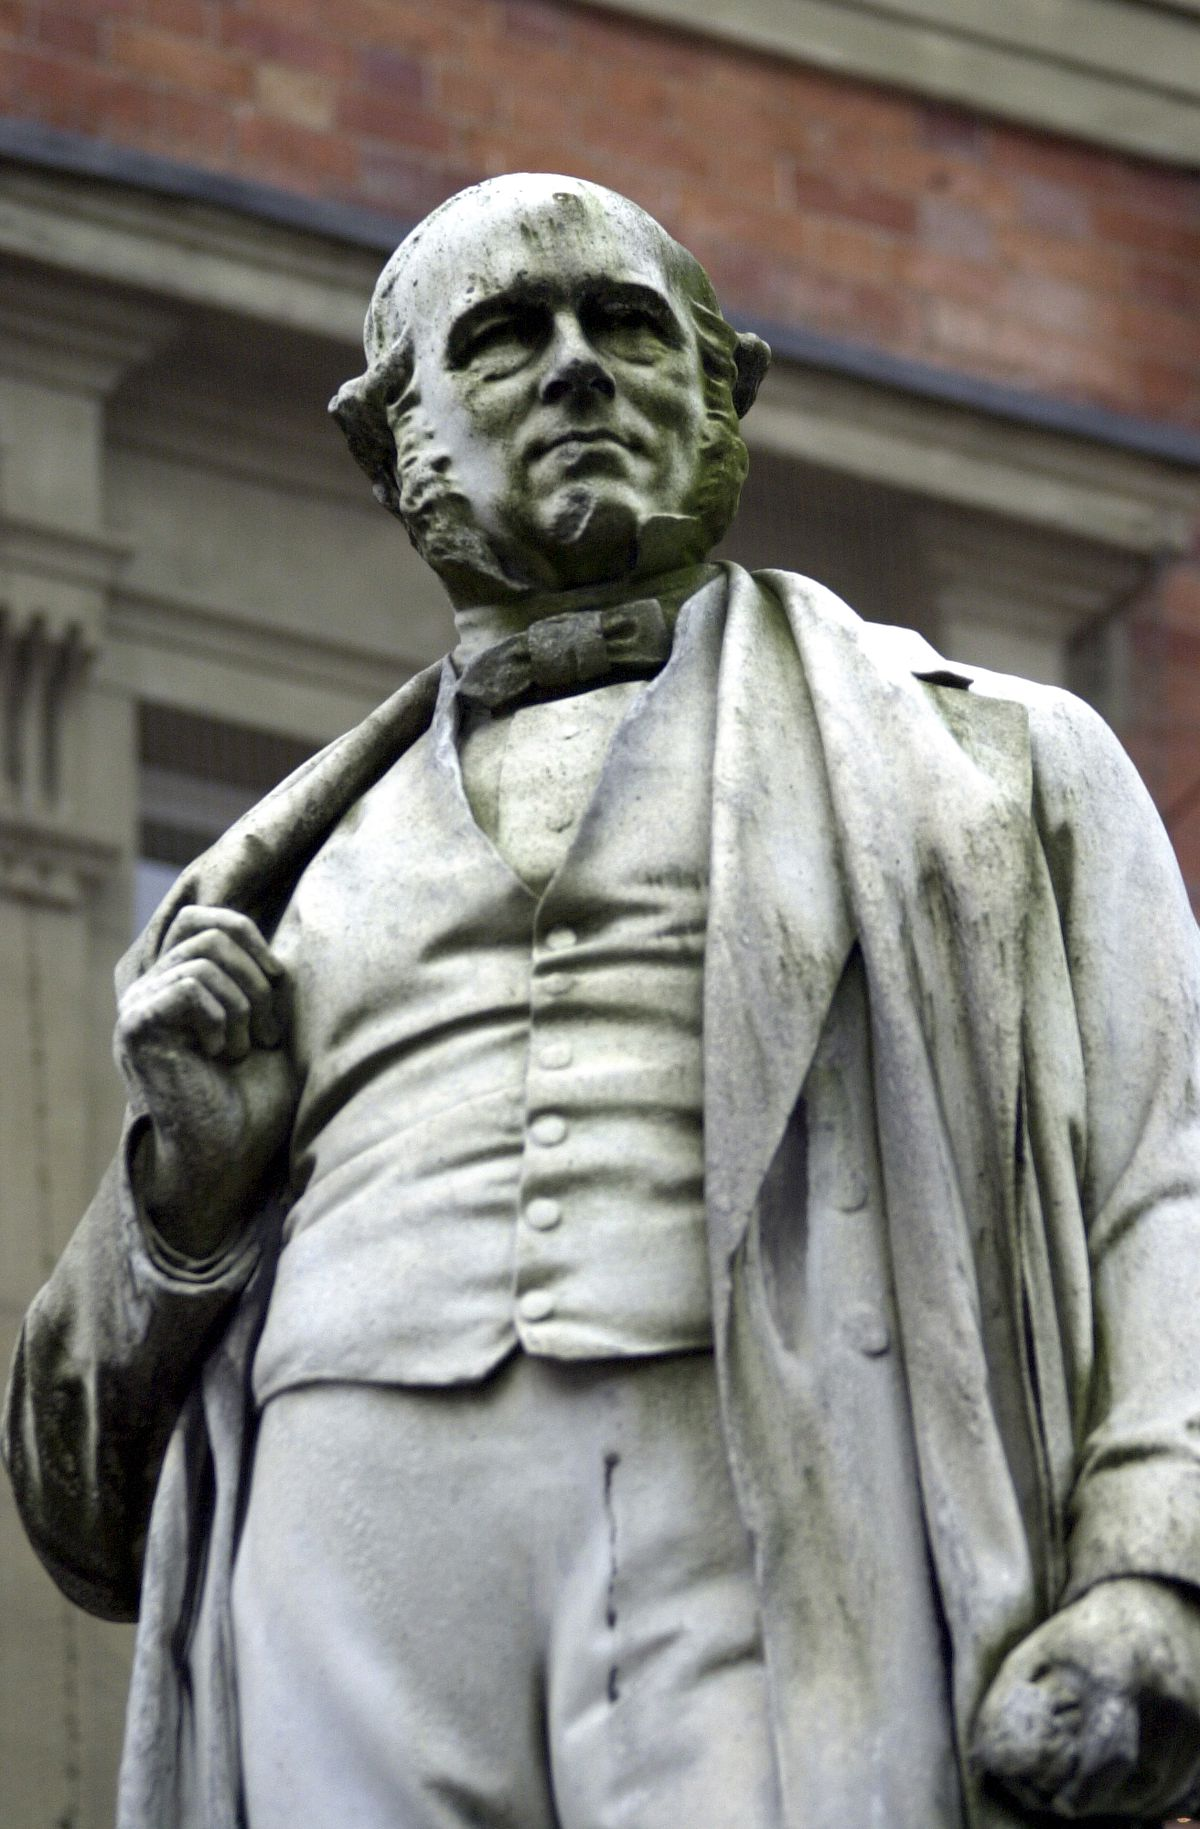 The statue of Rowland Hill outside Kidderminster Town Hall